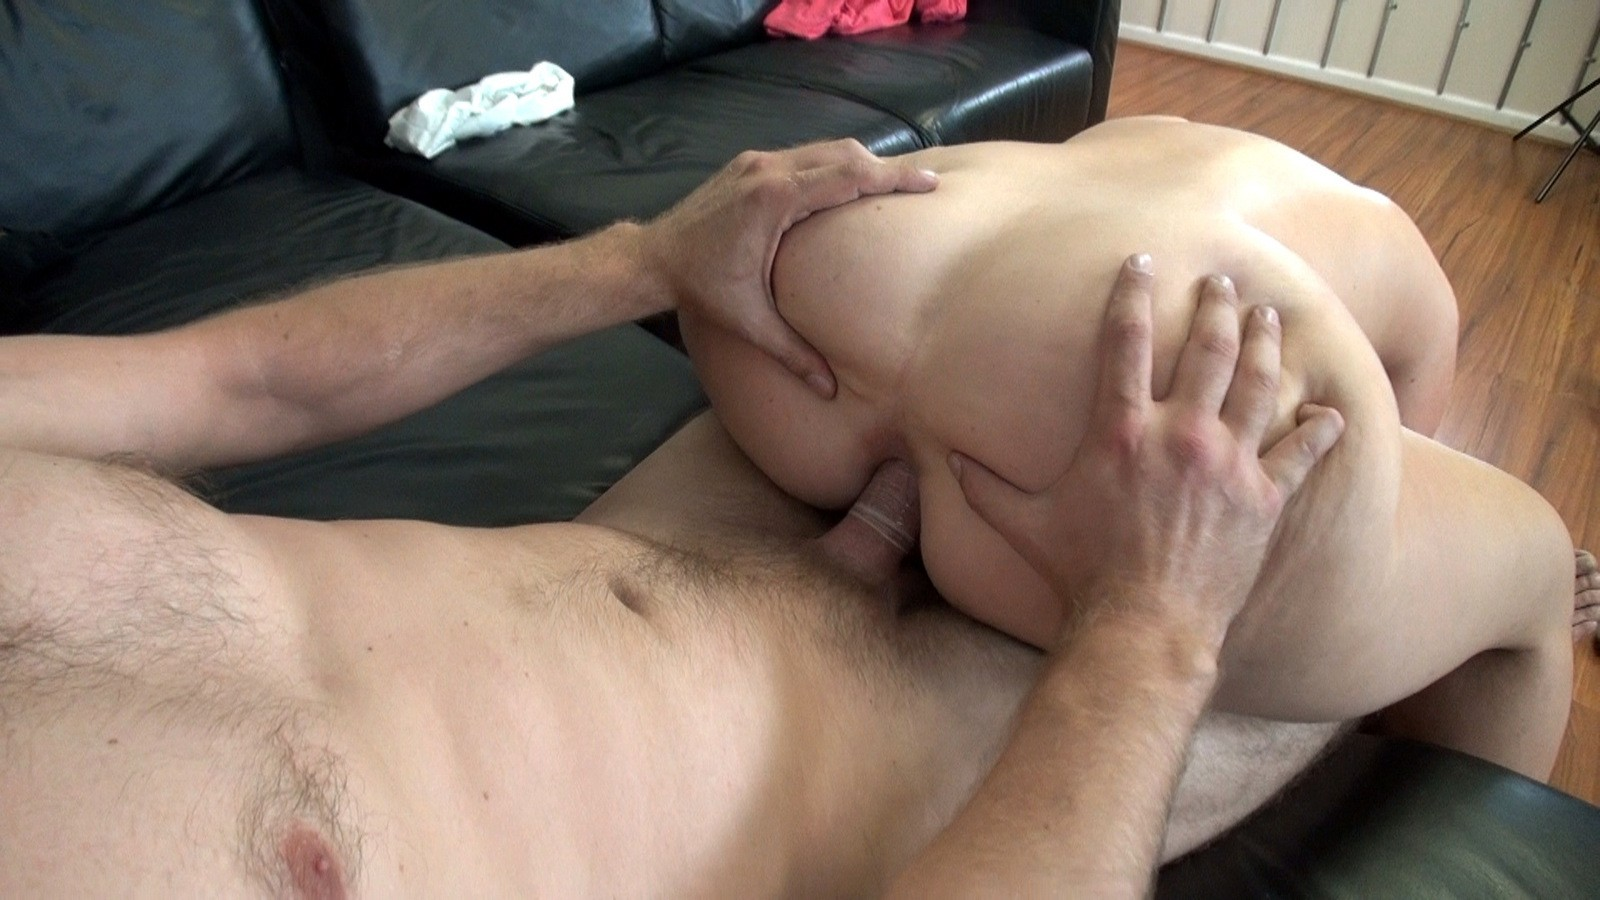 I watch my friend fuck my wife